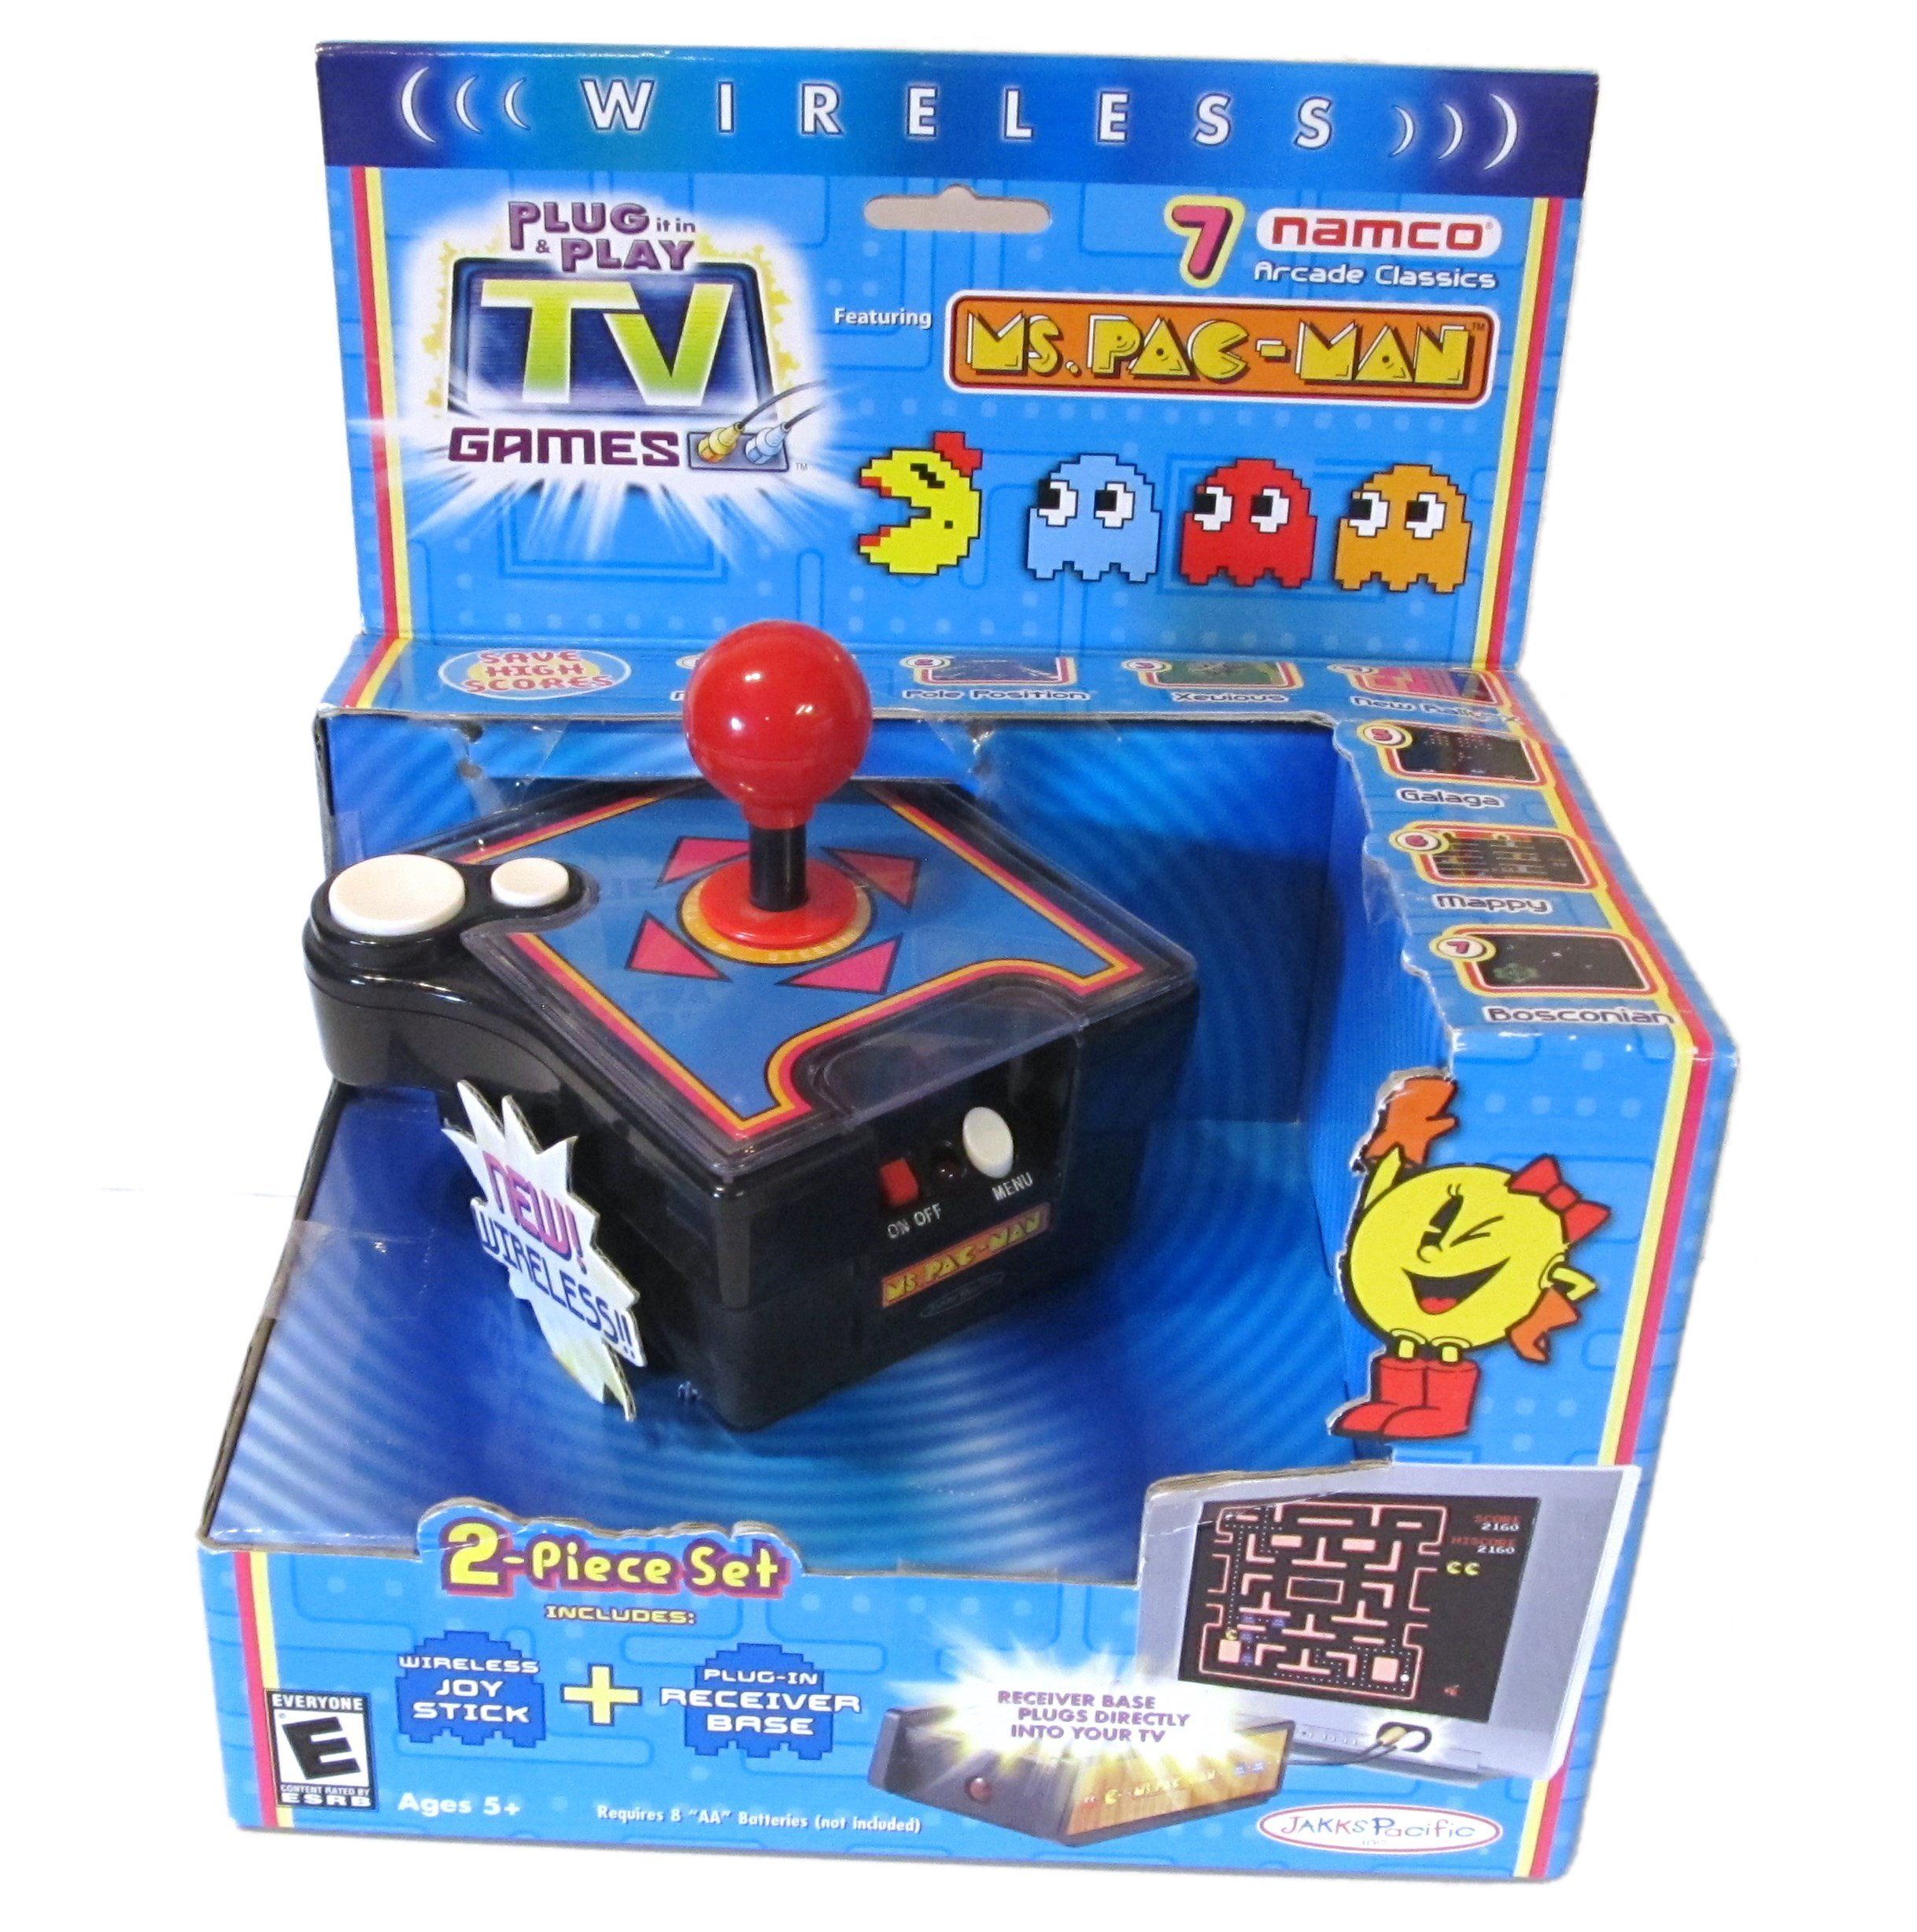 Namco Ms. Pac-Man Wireless 7-in-1 TV Game